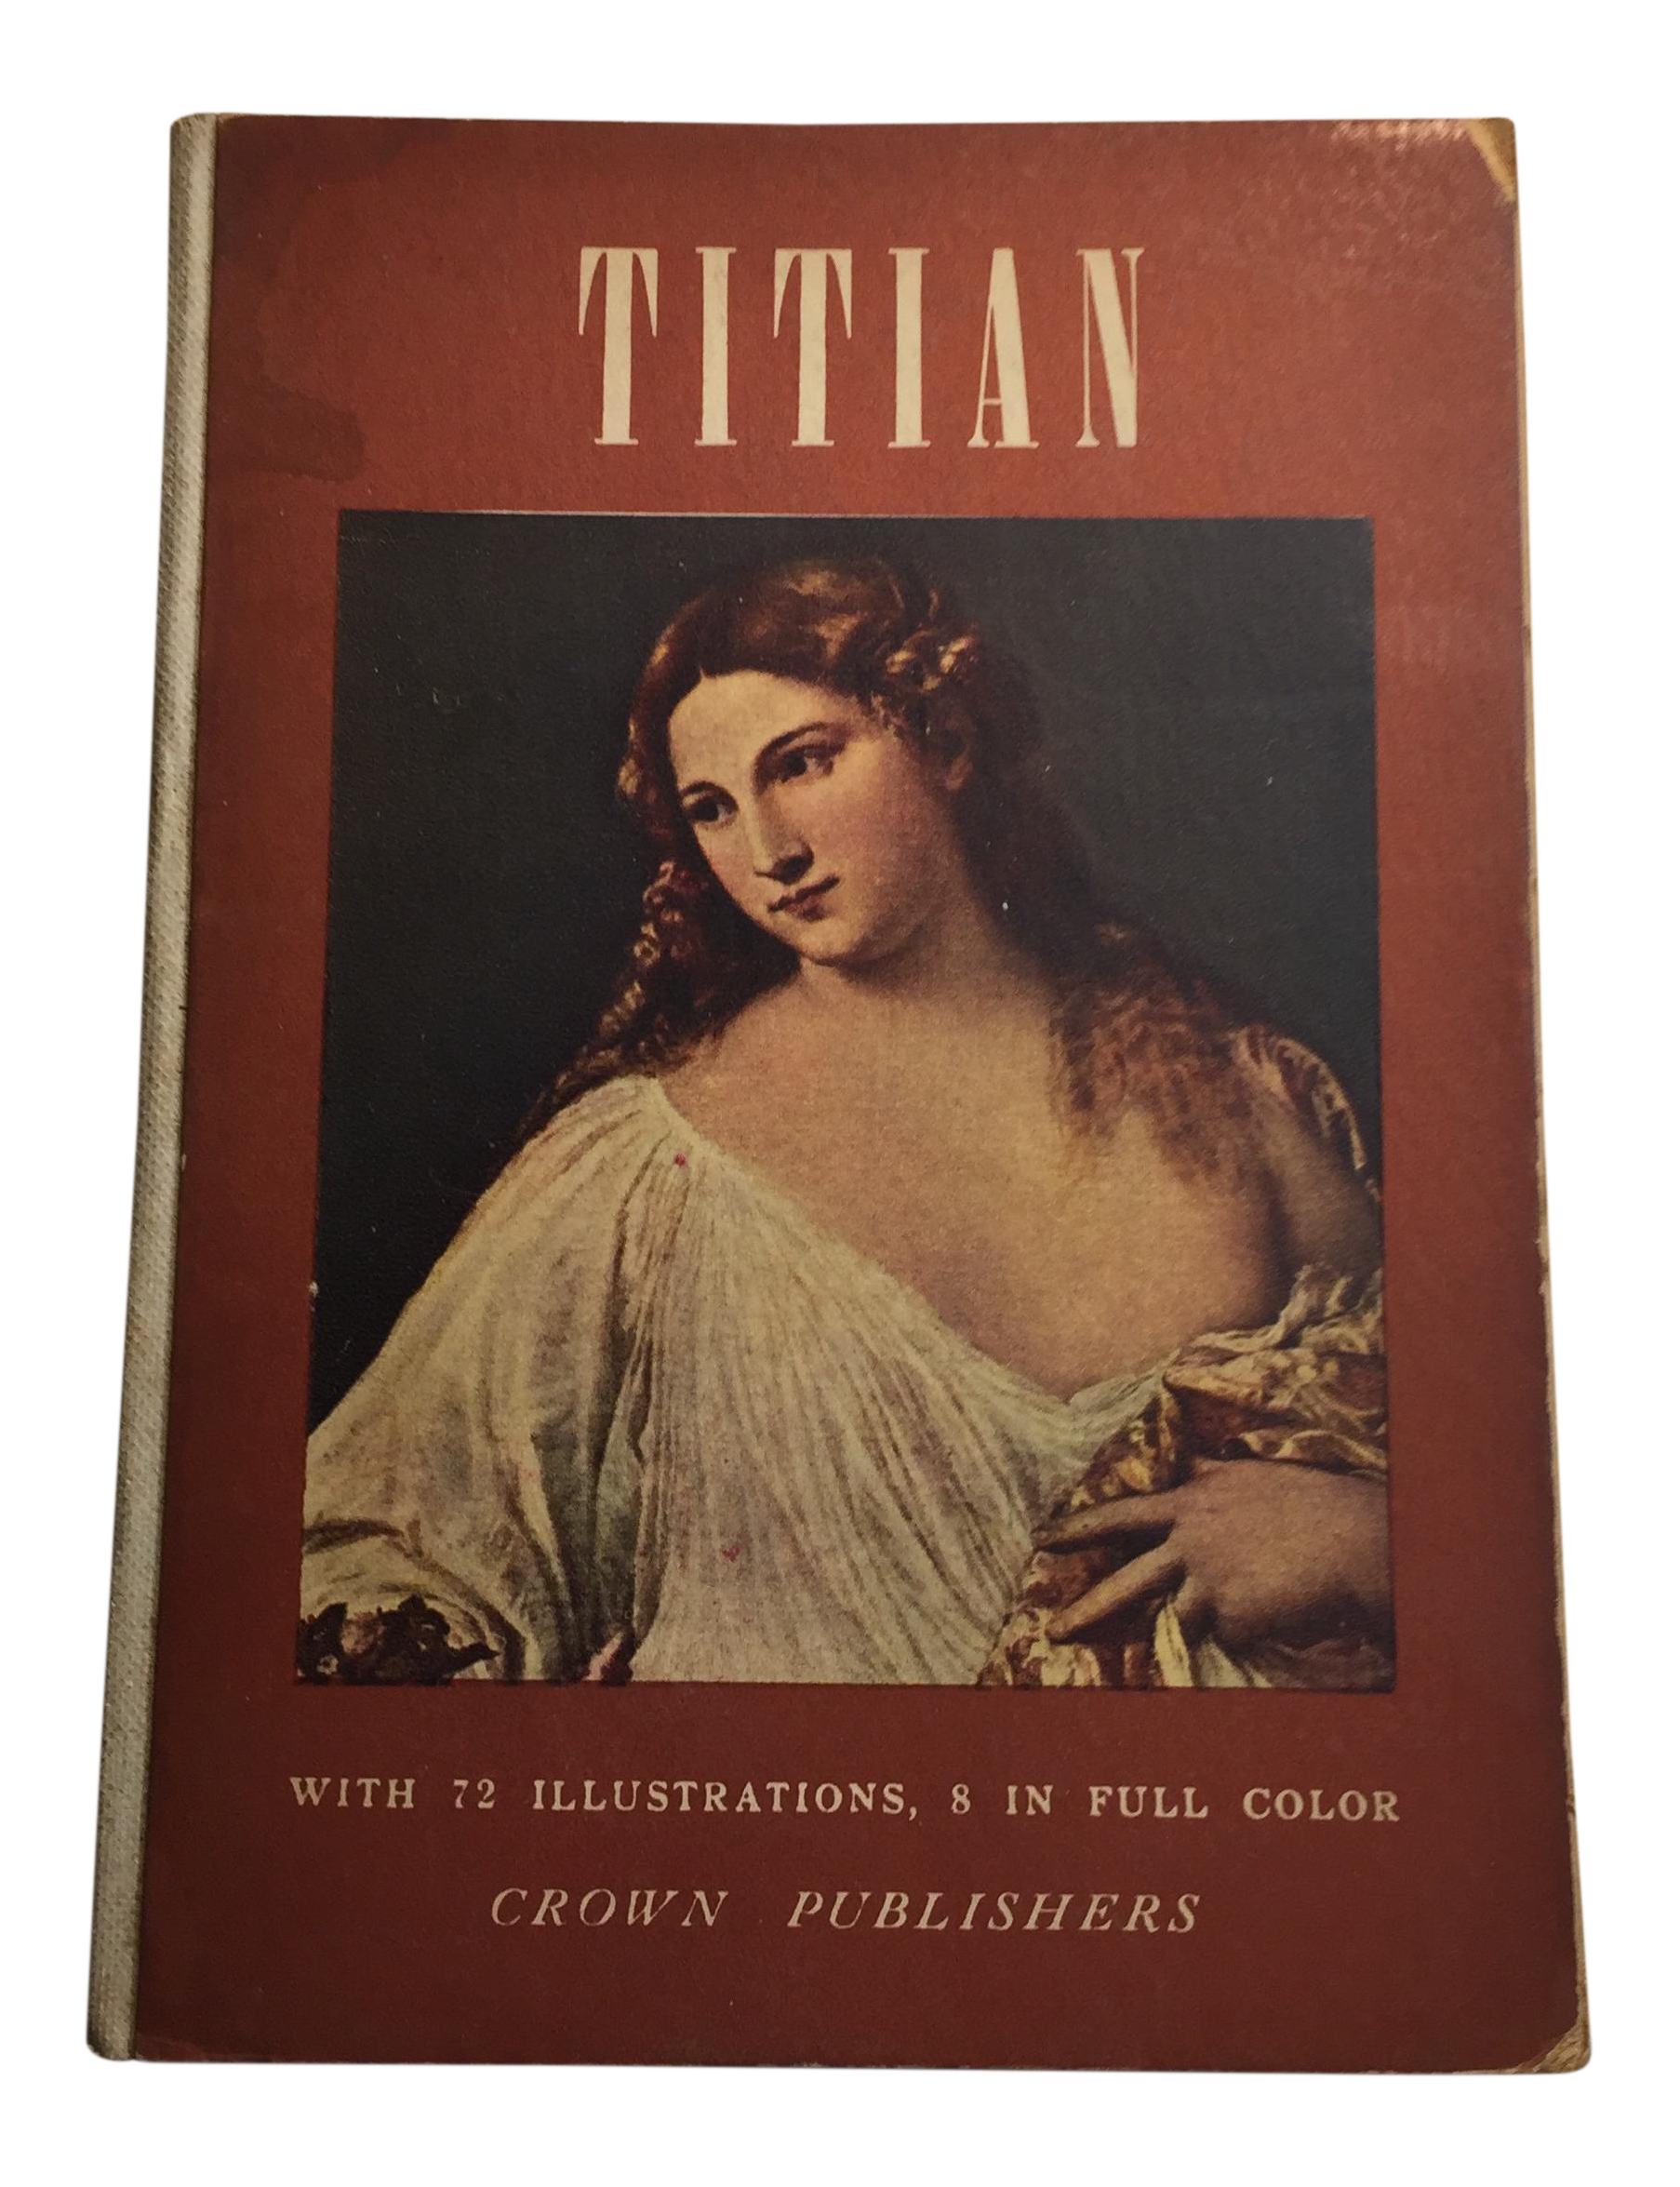 Titian drawing landscape. Book by luisa